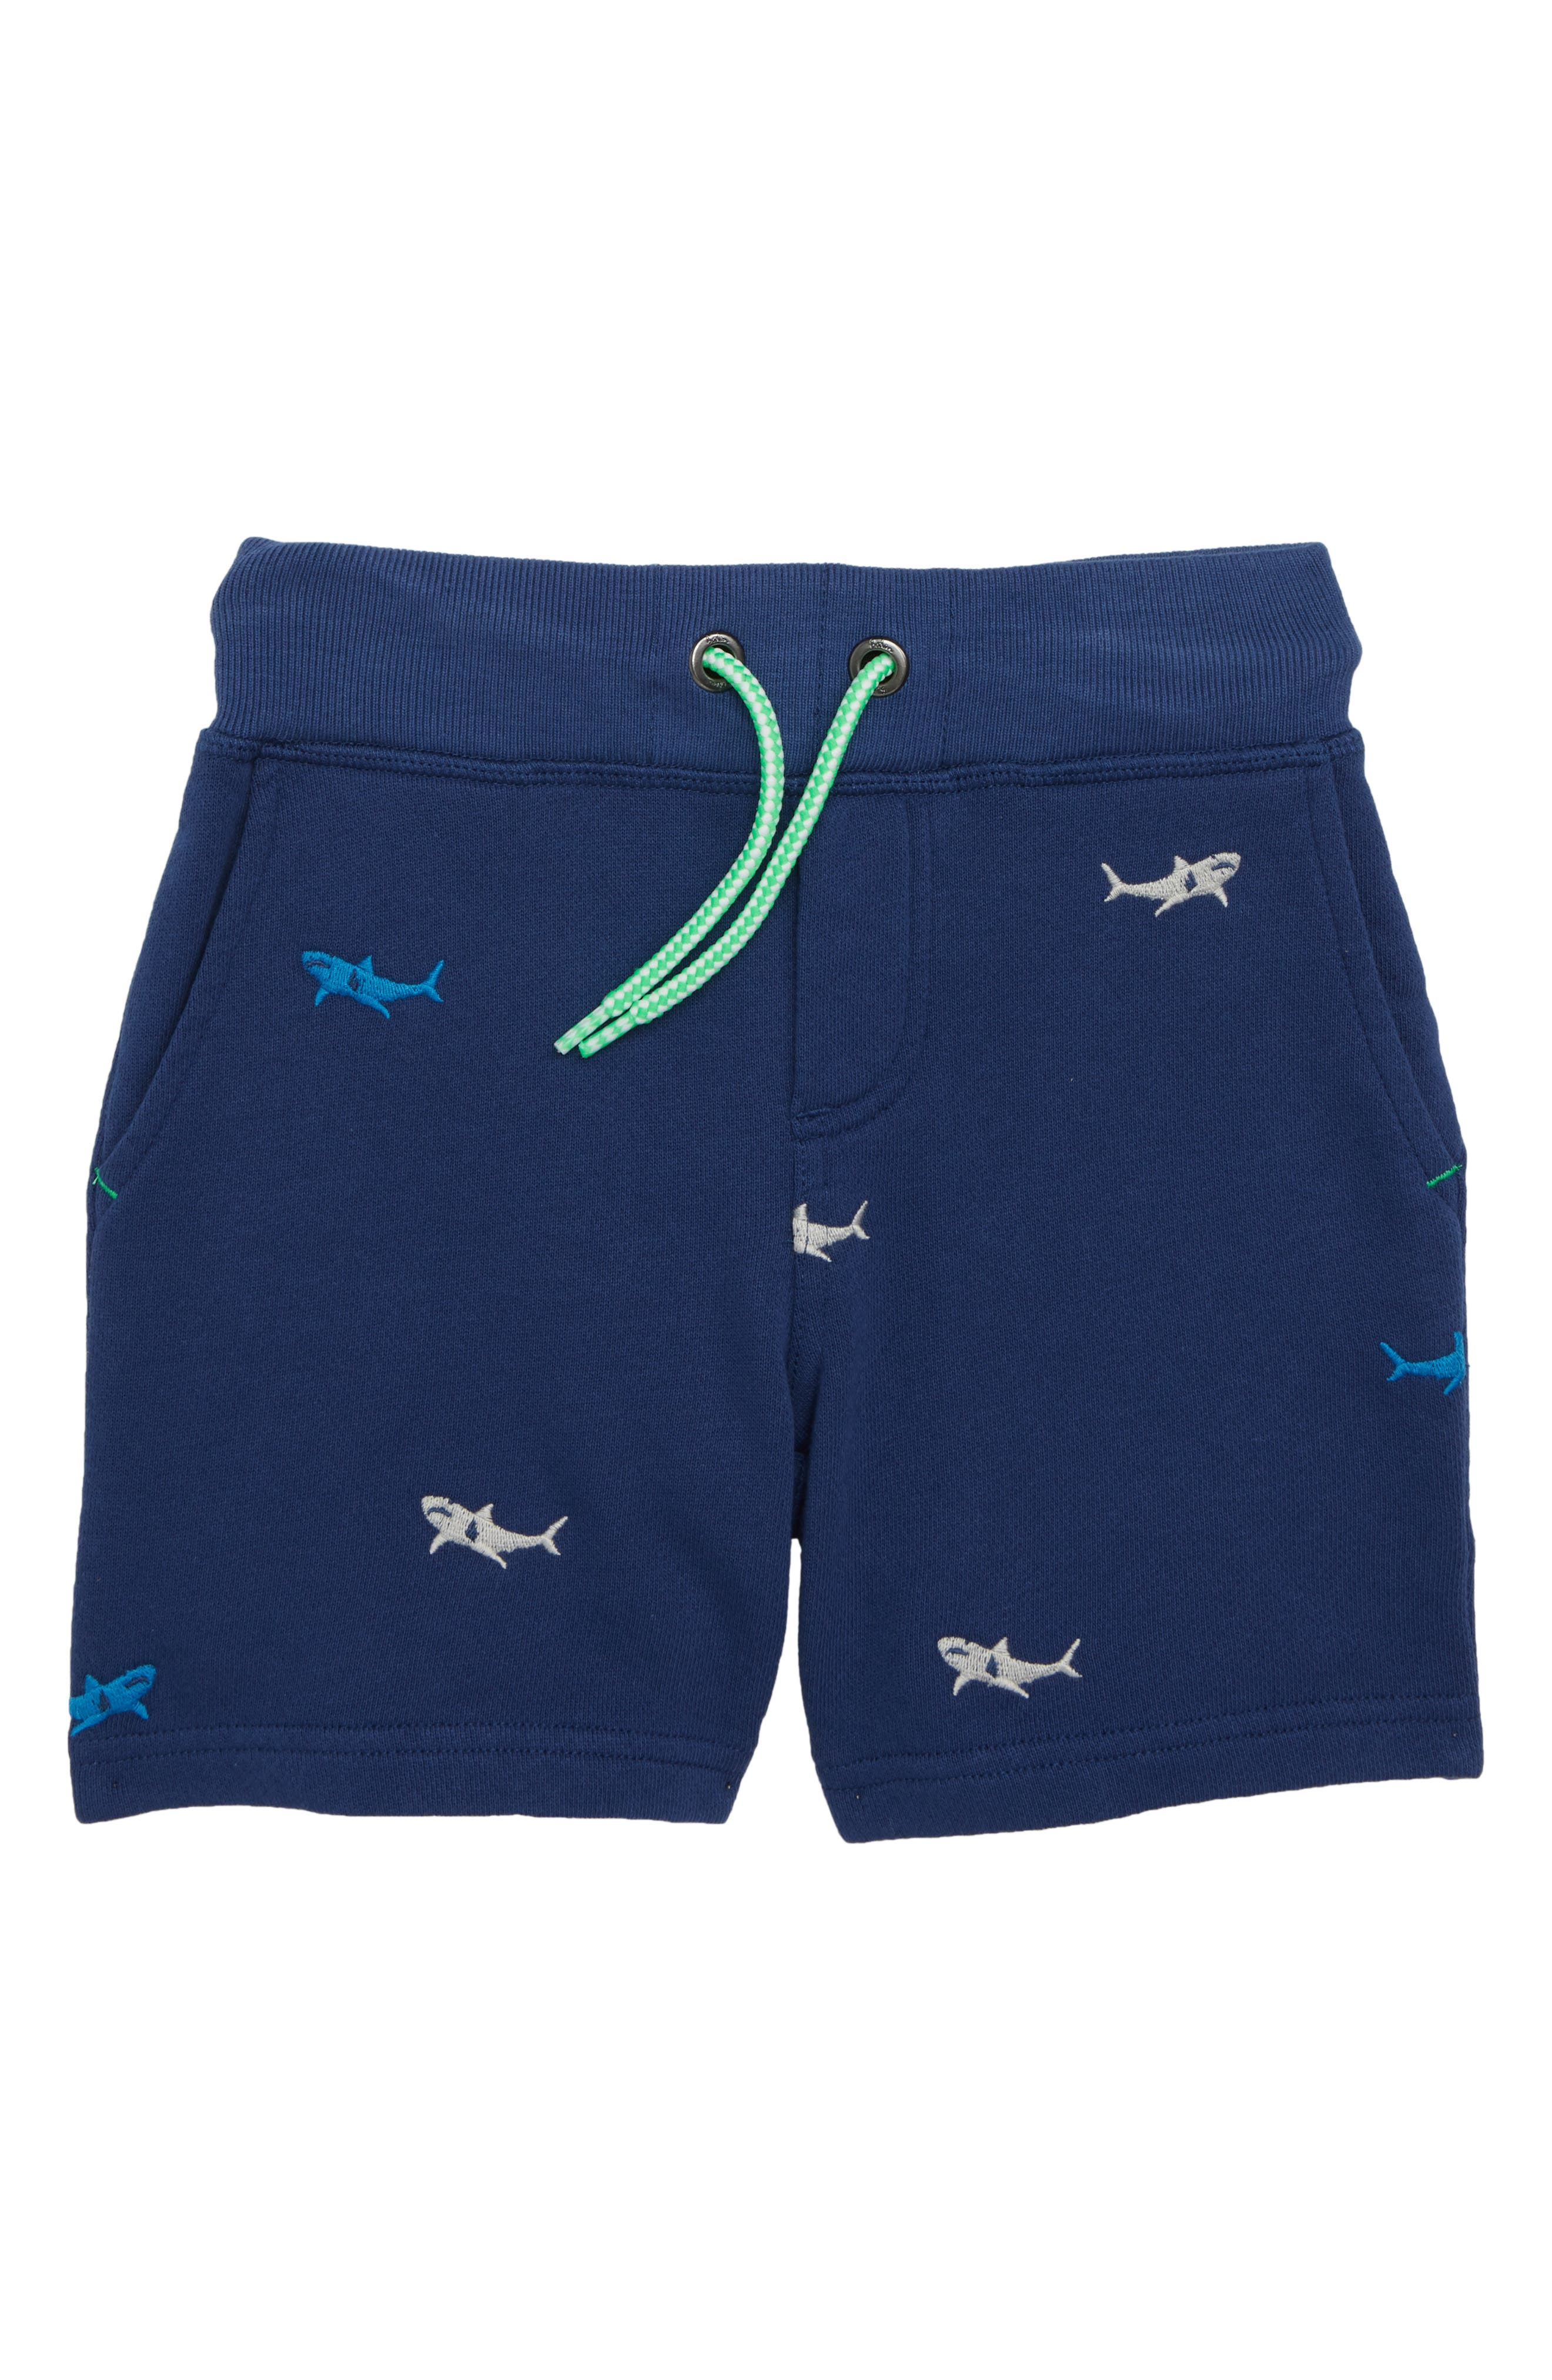 Embroidered Jersey Shorts,                             Main thumbnail 1, color,                             404